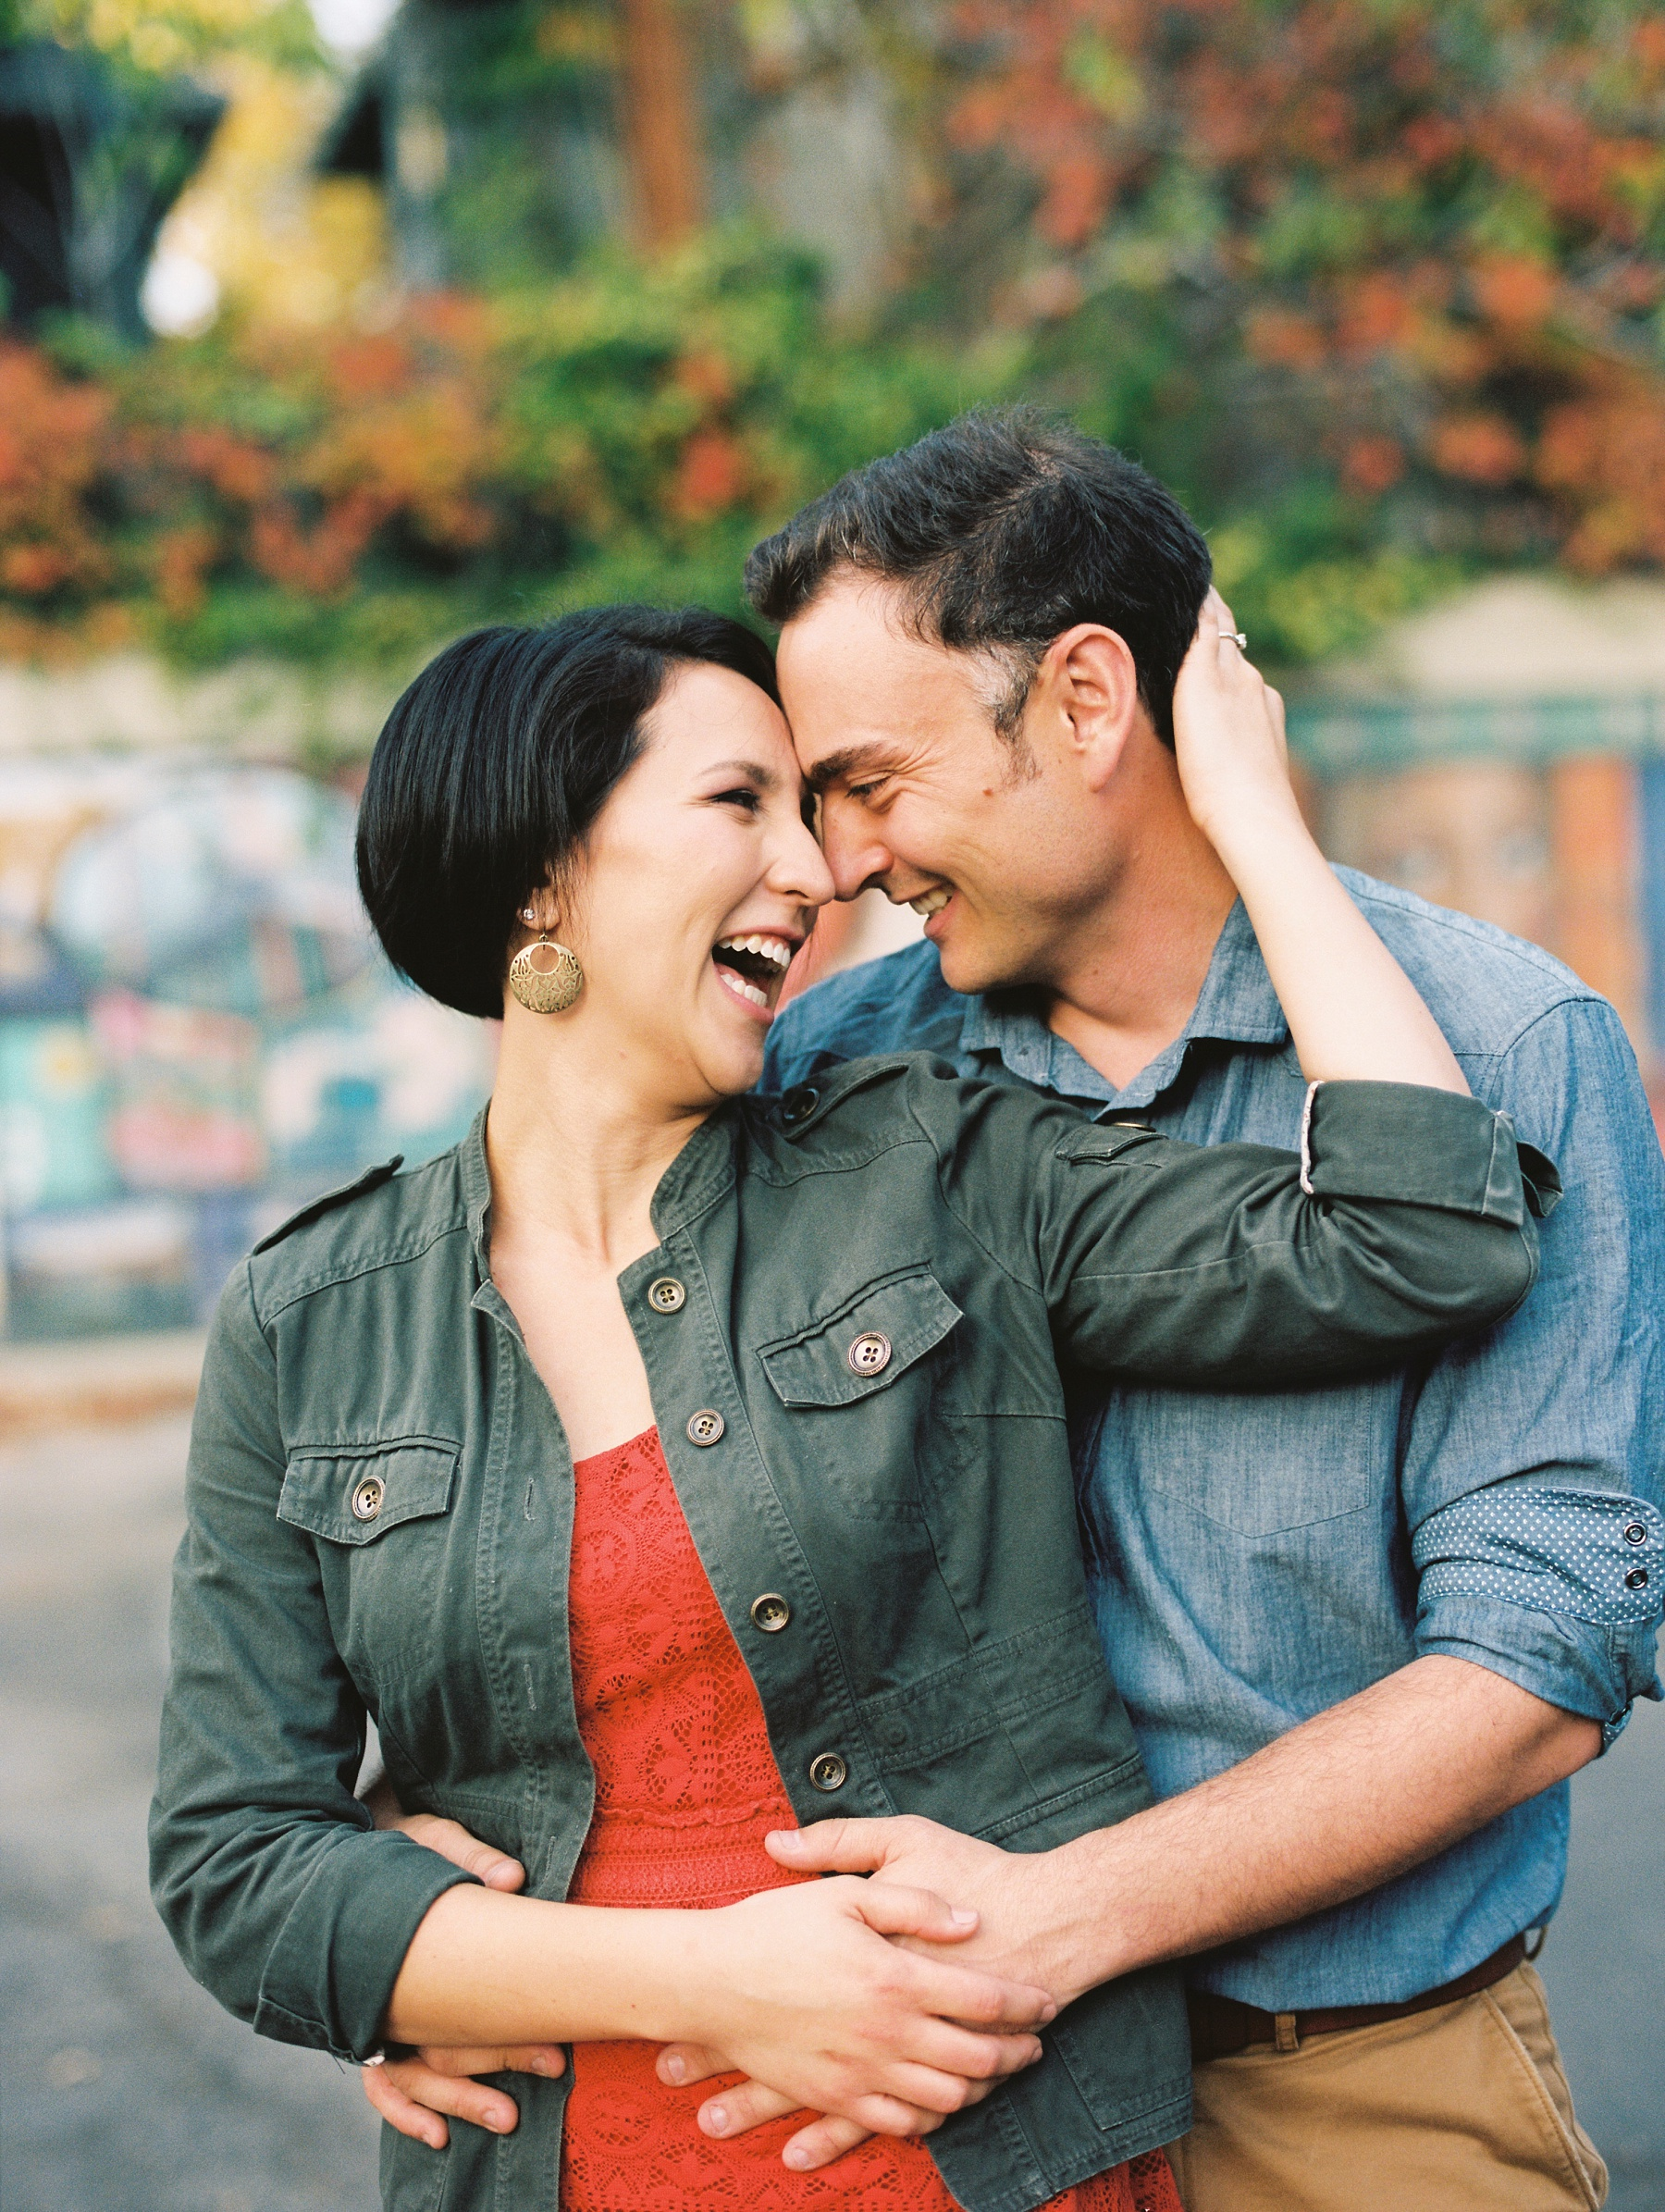 How to have an awesome engagement session - Sarah Maren Photography